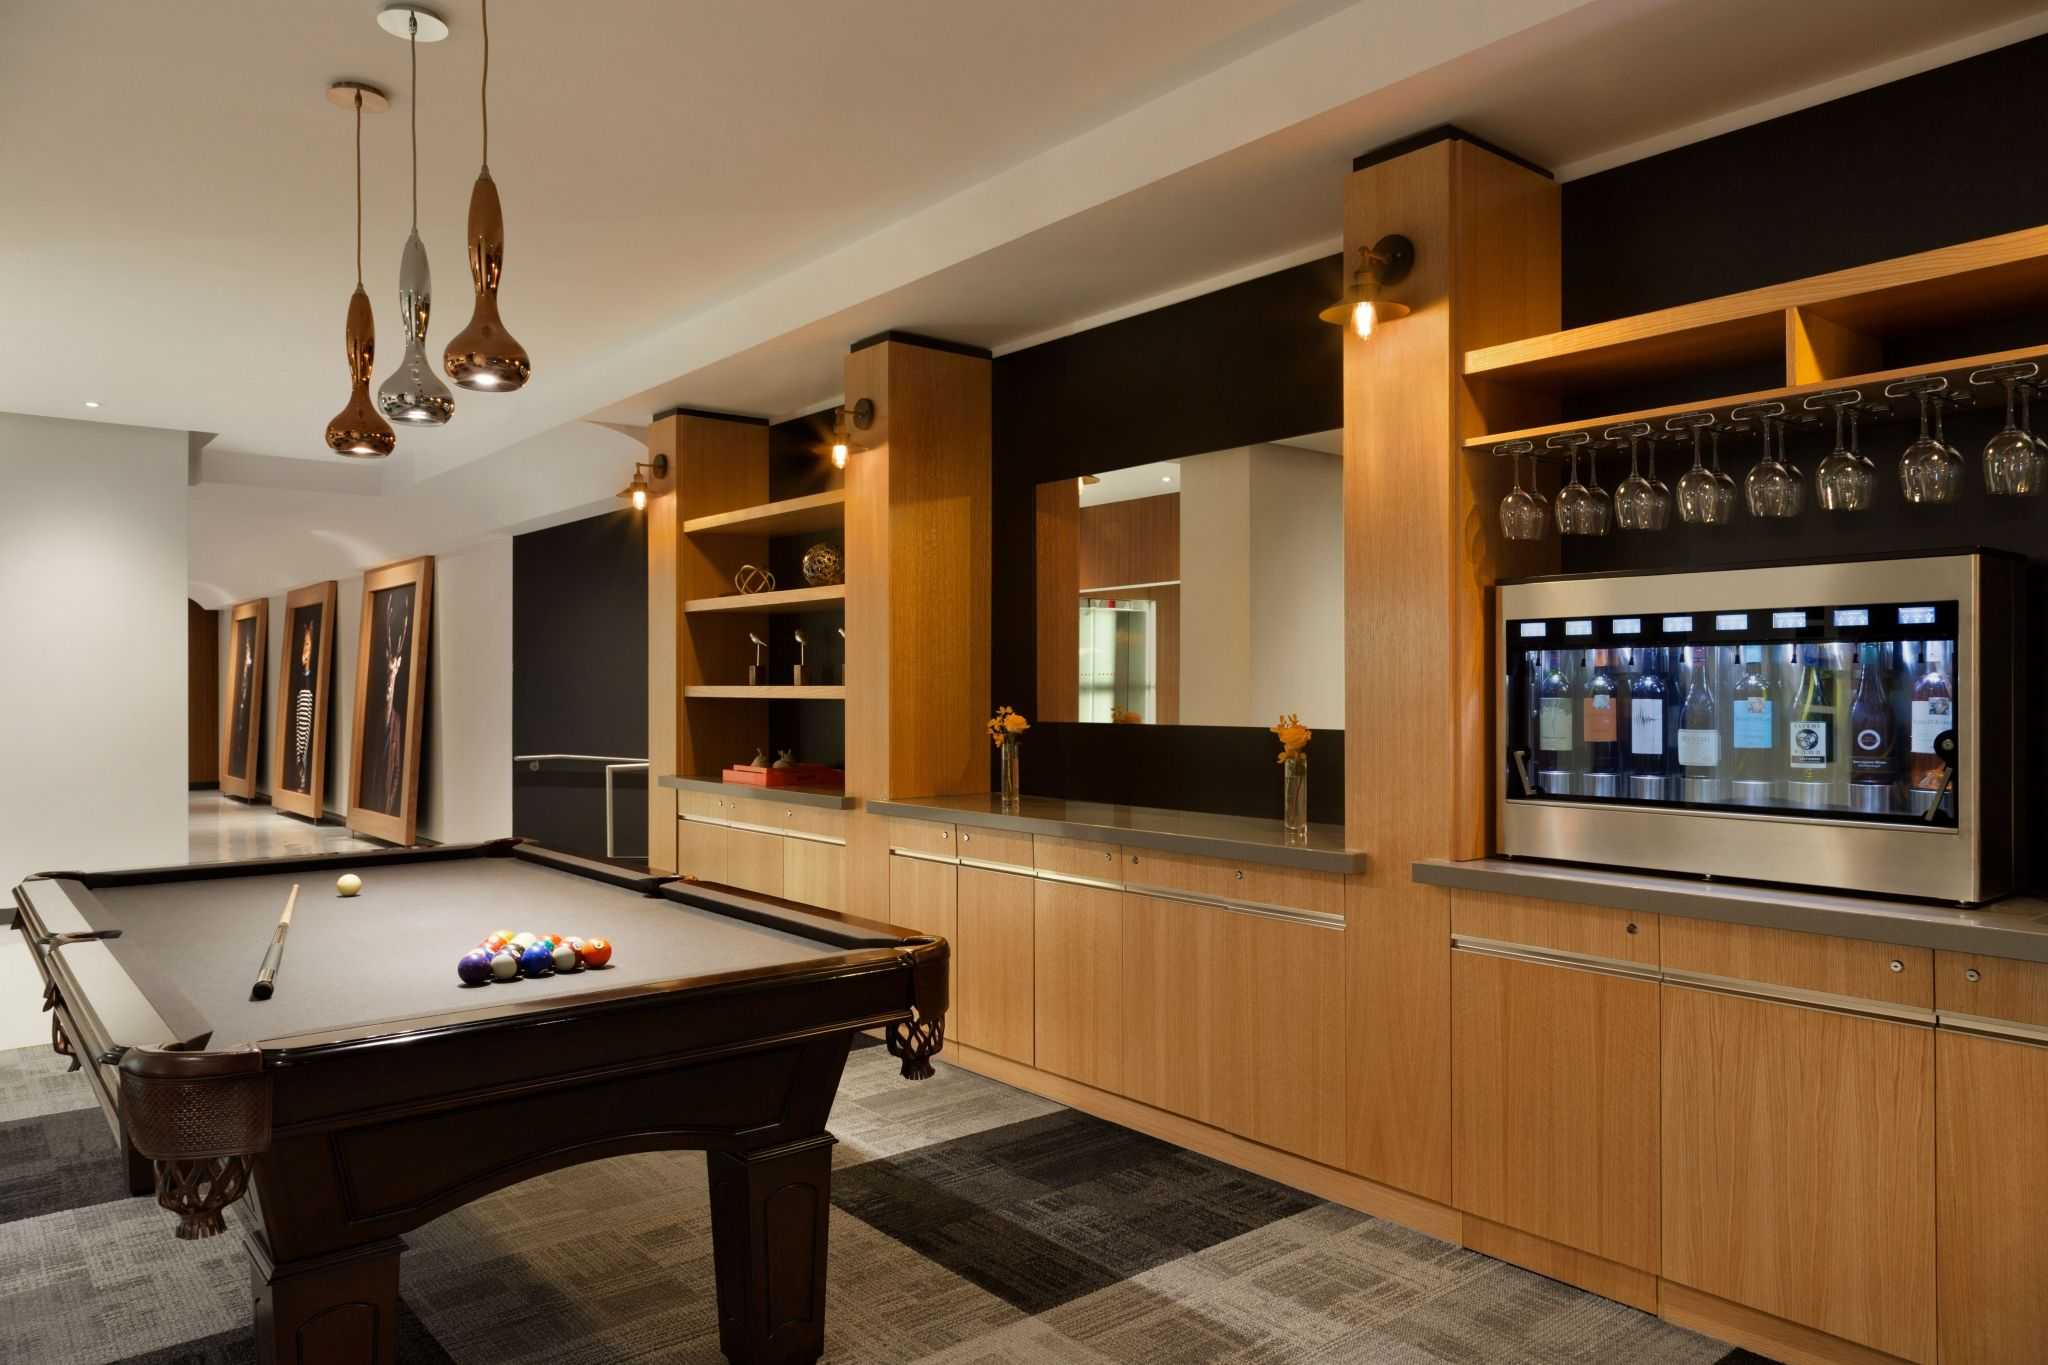 Billiards Table | Hotel PUR, Quebec, a Tribute Portfolio Hotel